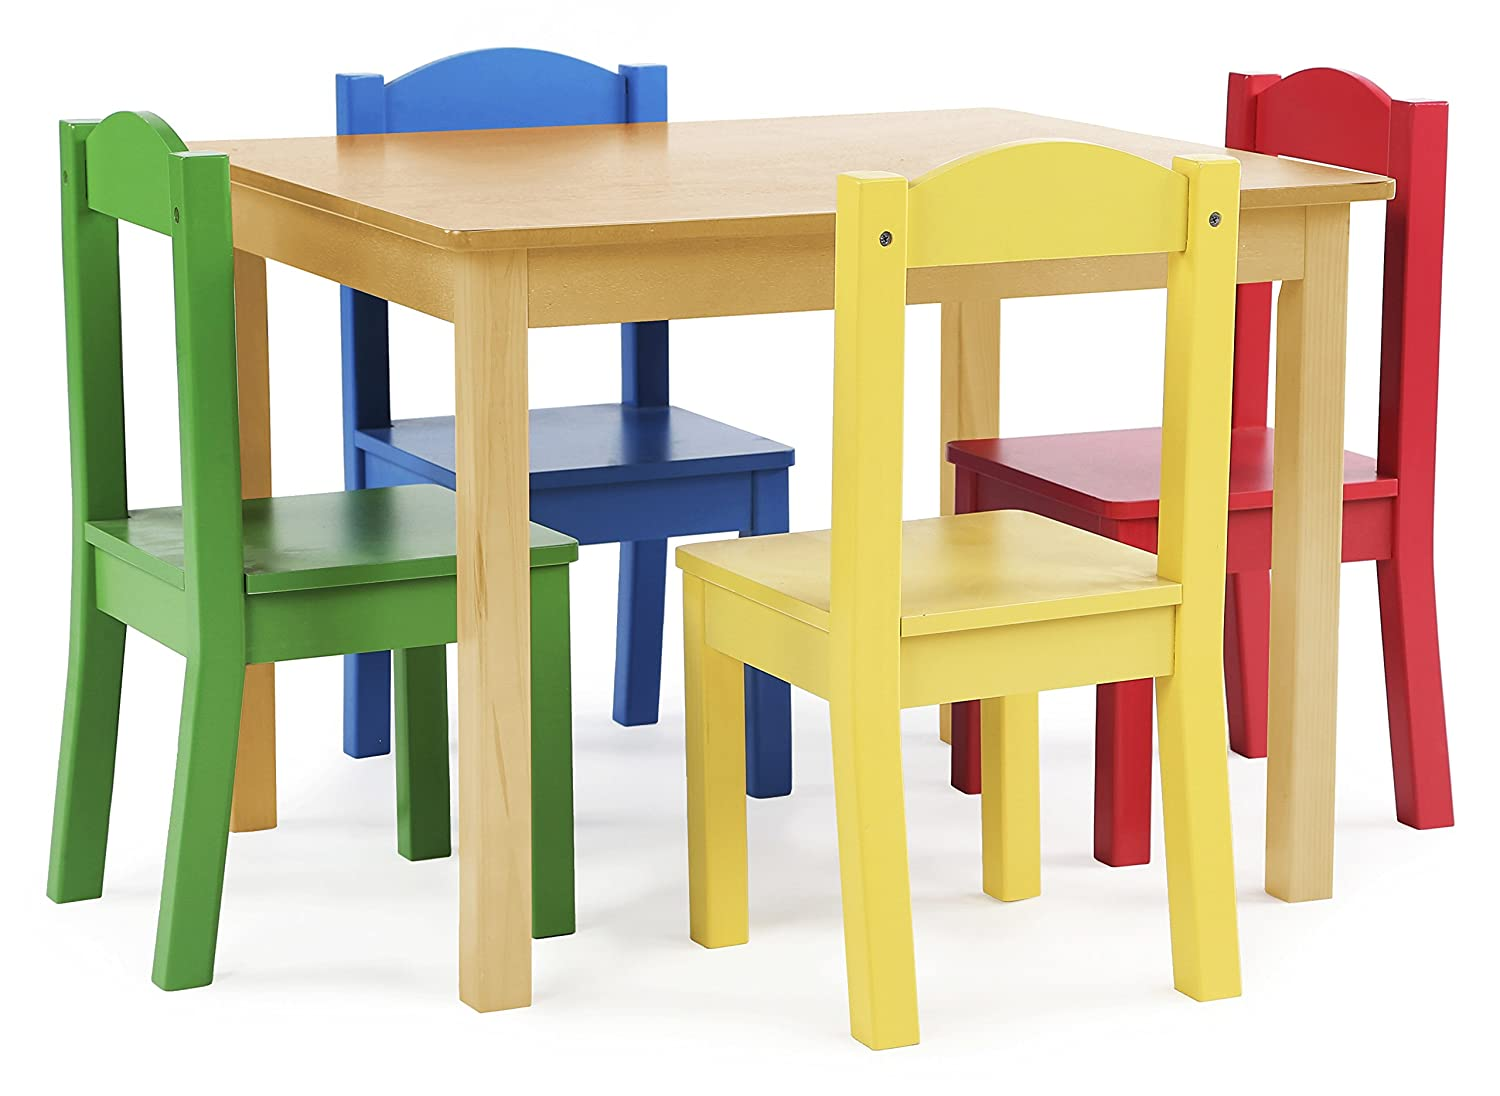 Amazon.com Tot Tutors TC715 Primary Collection Kids Wood Table \u0026 4 Chair Set Natural/Primary Kitchen \u0026 Dining  sc 1 st  Amazon.com & Amazon.com: Tot Tutors TC715 Primary Collection Kids Wood Table \u0026 4 ...